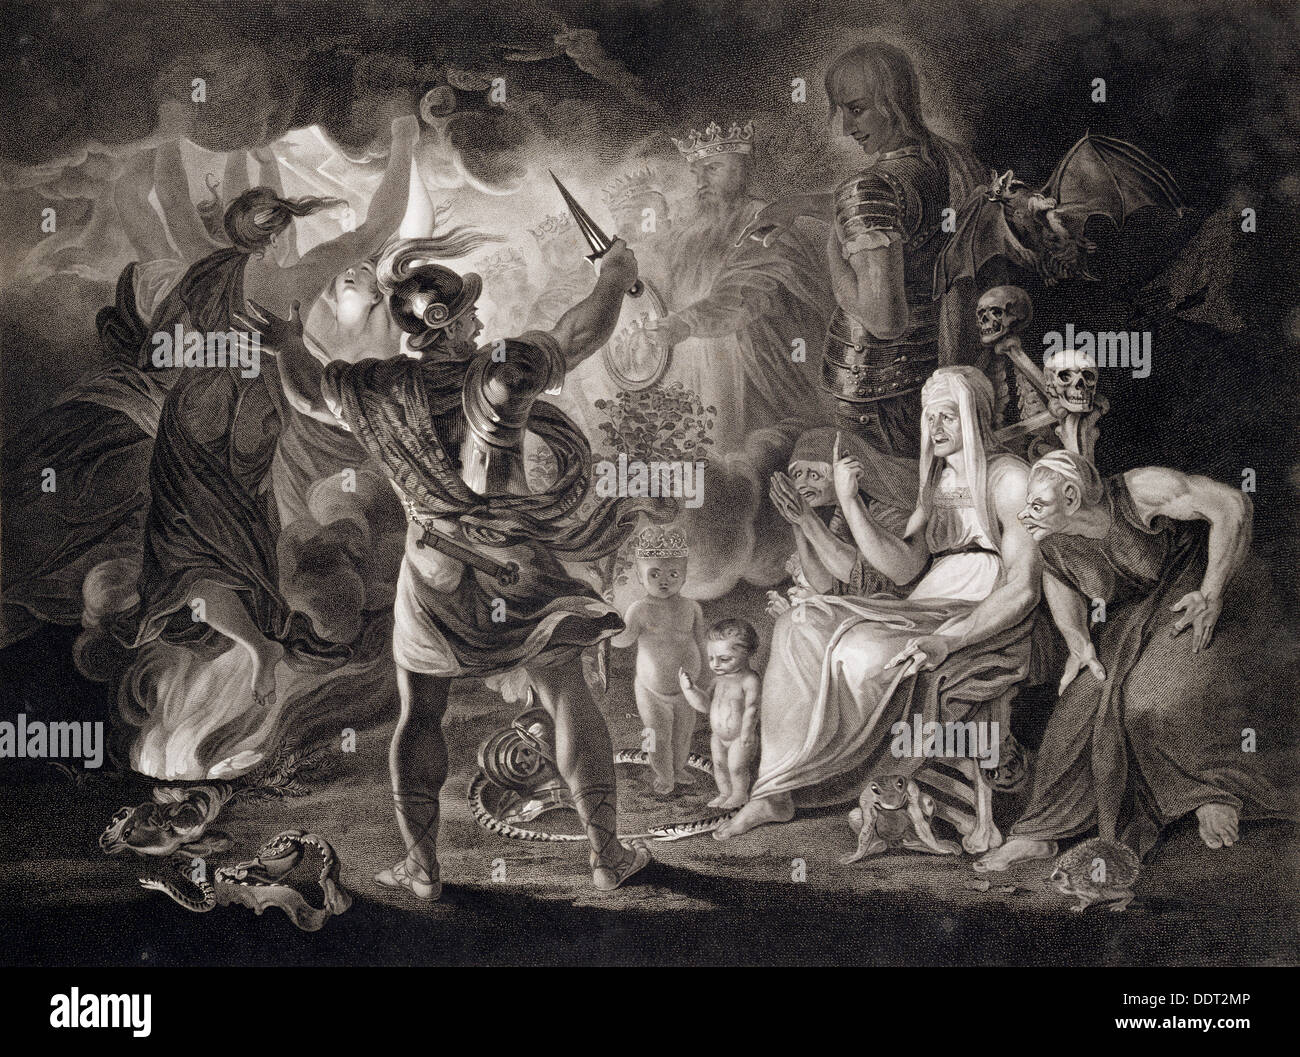 an examination of the three witches in macbeth by william shakespeare William shakespeare the company  macbeth and banquo encounter three witches who prophesy that macbeth will become king of scotland  and an examination of the .